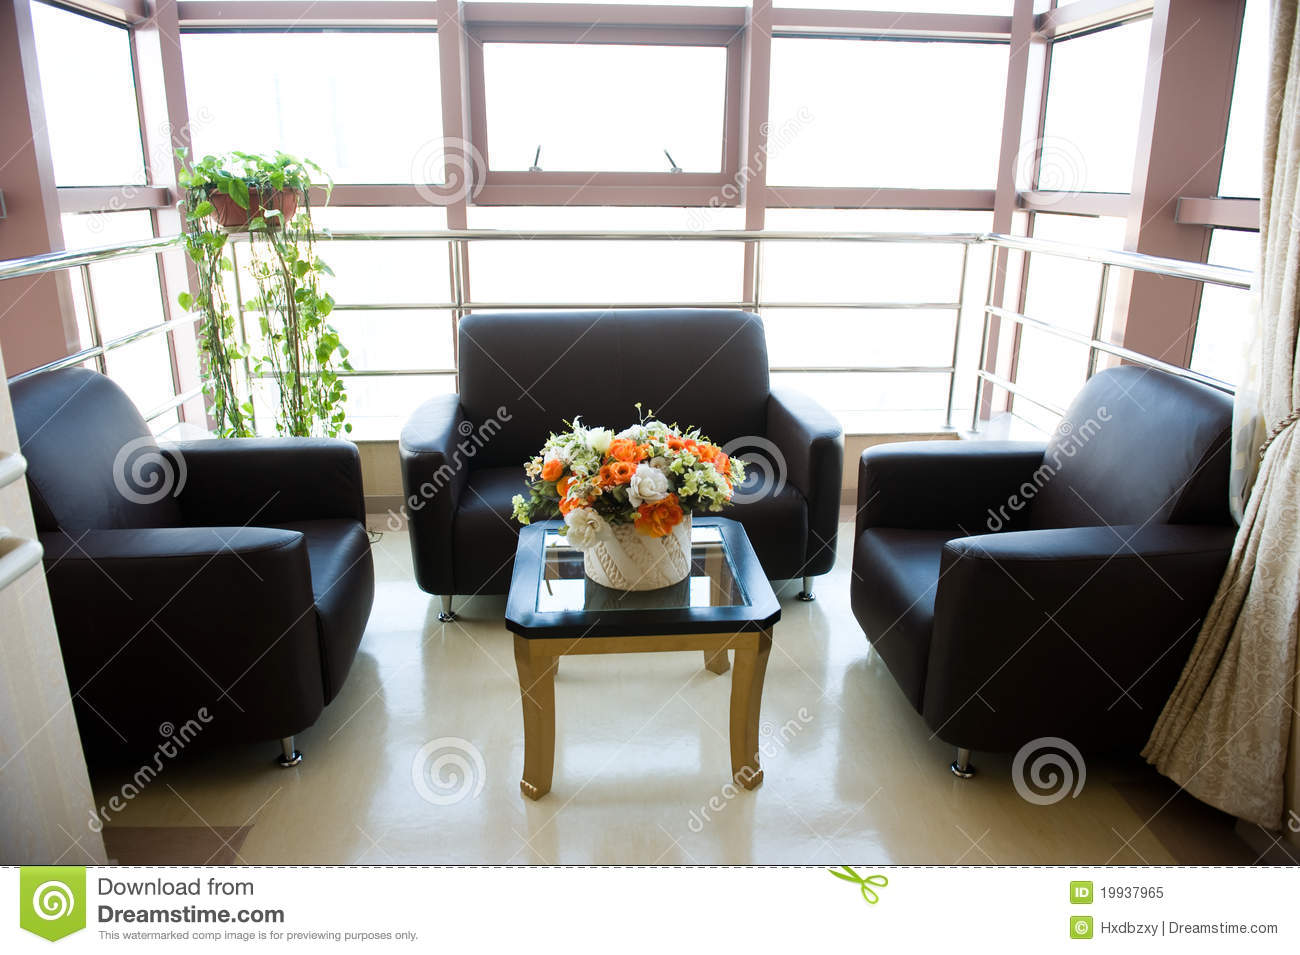 Hospital or clinic waiting room with empty chairs and table